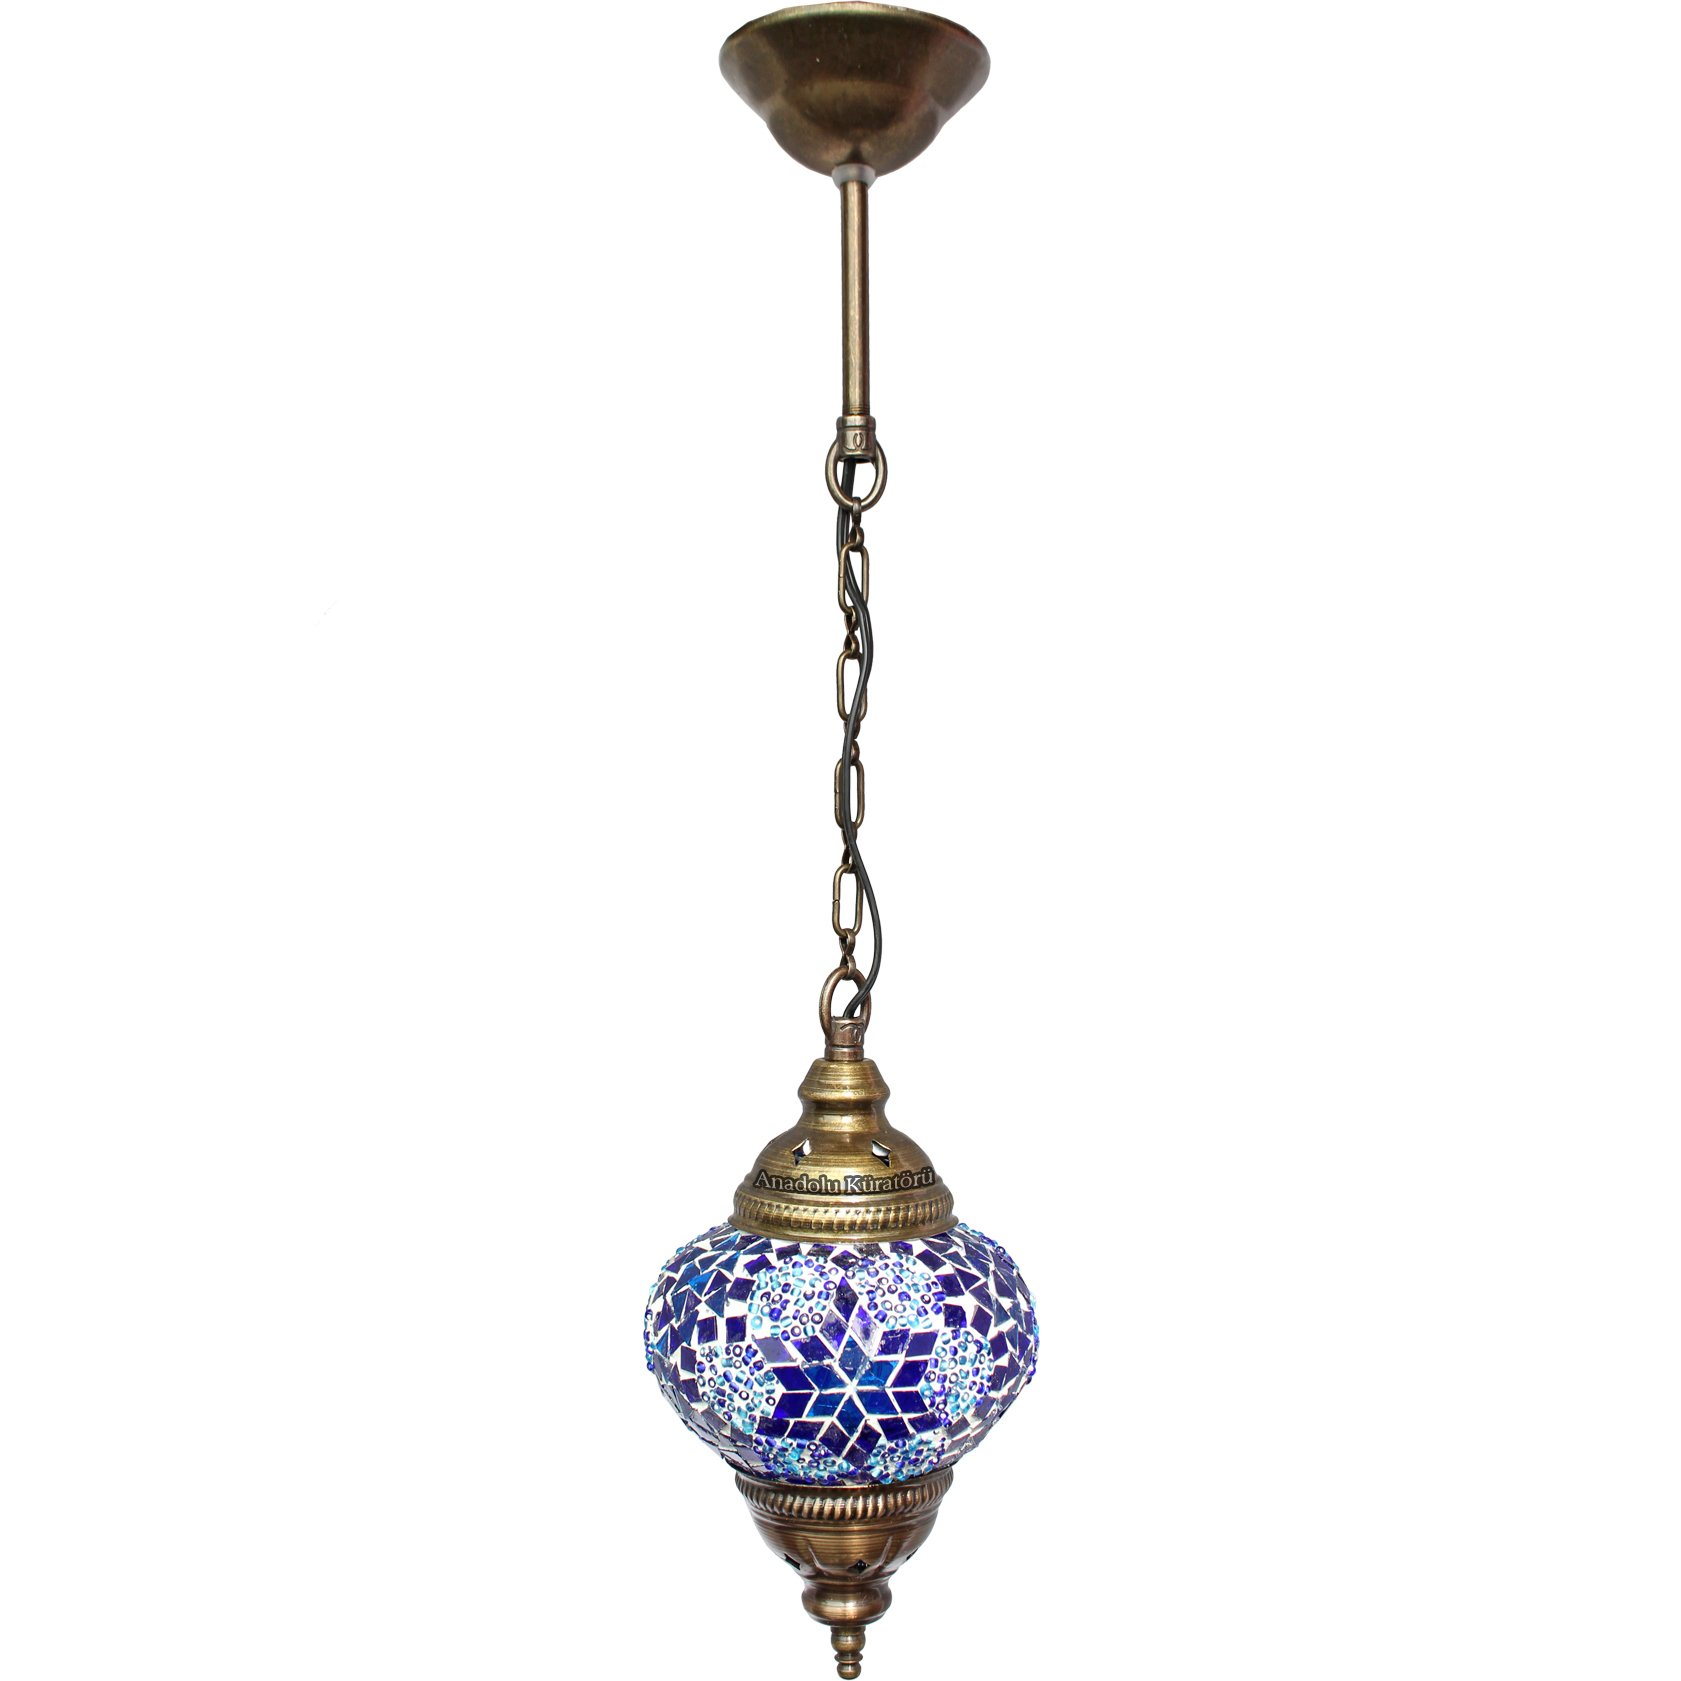 Ceiling Pendant Fixtures, Mosaic Lamps, Turkish Lamps, Hanging Lights, Moroccan Lanterns, Color Glass, Size 2, Blue, Arabian Nights